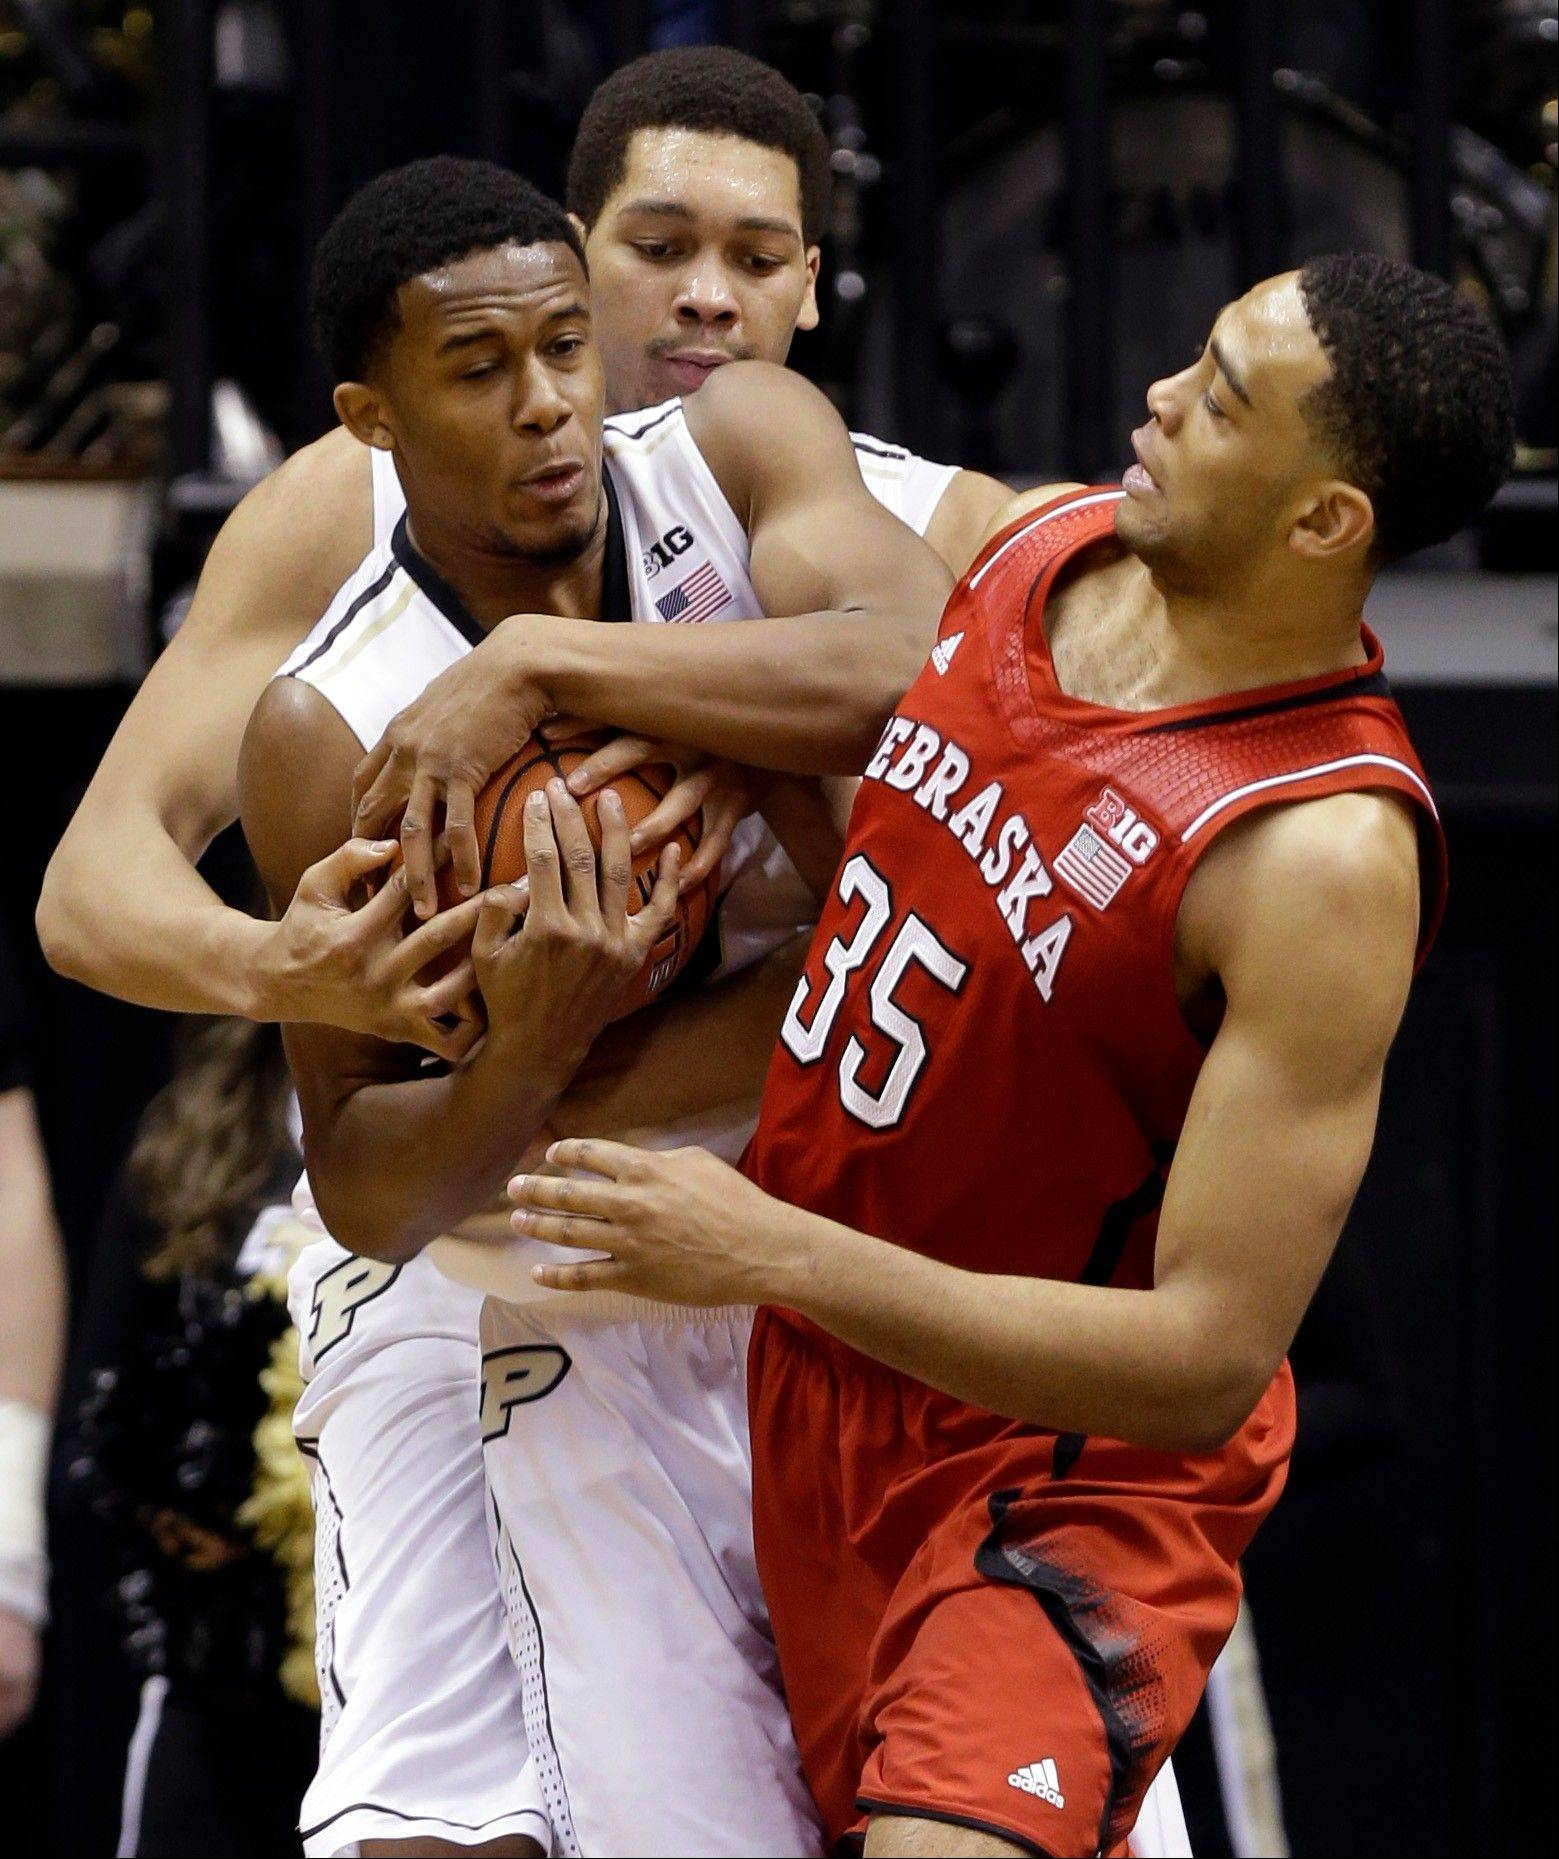 Nebraska forward Walter Pitchford, right, gets tied up with Purdue forward Basil Smotherman, left front, and center A.J. Hammons in the second half of Sunday�s game in West Lafayette, Ind.